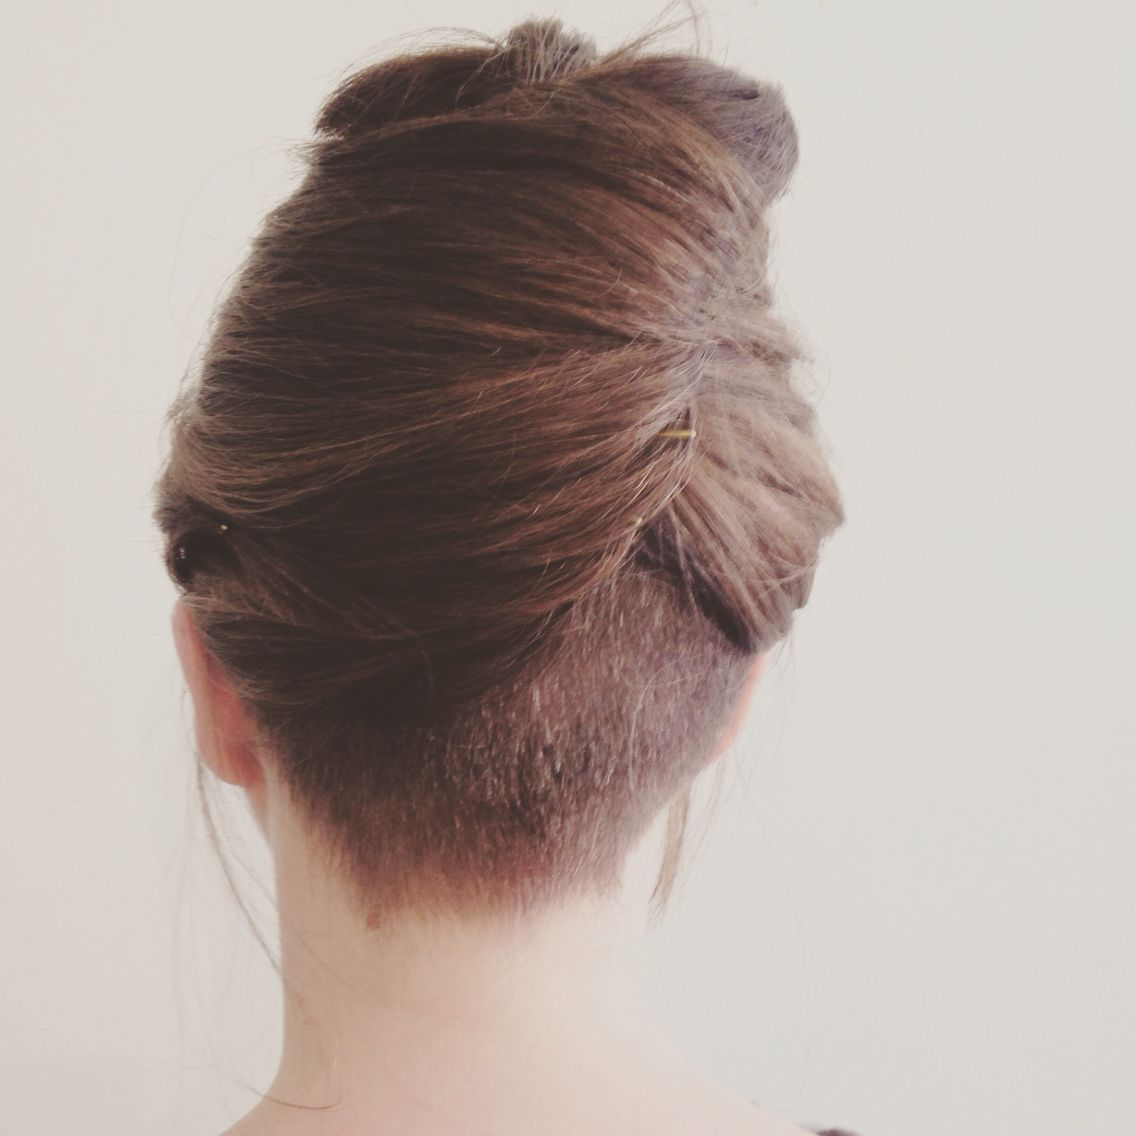 undercuts and updos by moi #undercuts #upstyle #heatwave